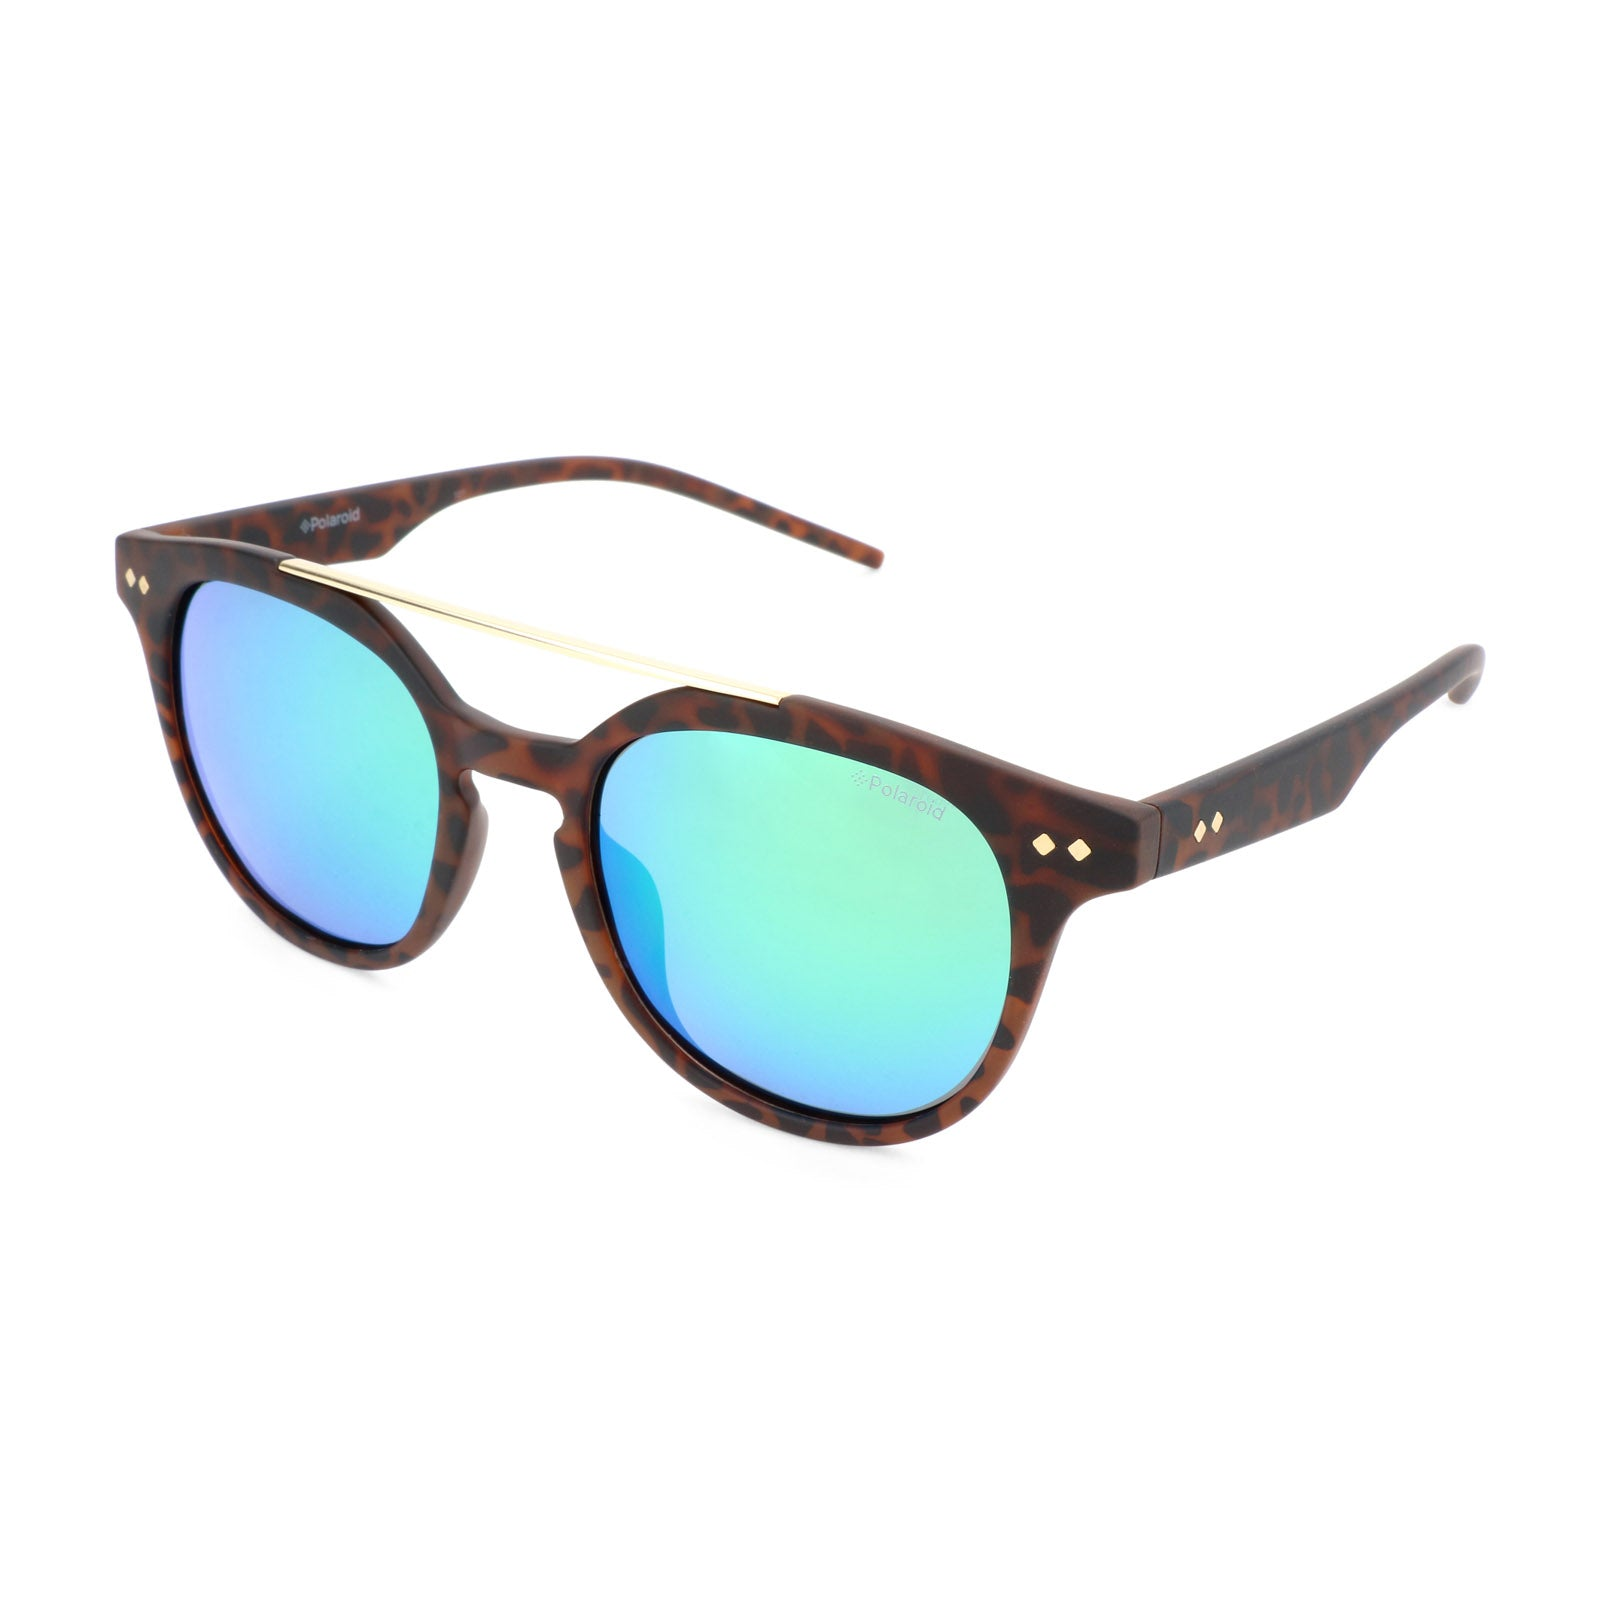 Polaroid - PLD1023S - Unisex Mirrored Sunglasses